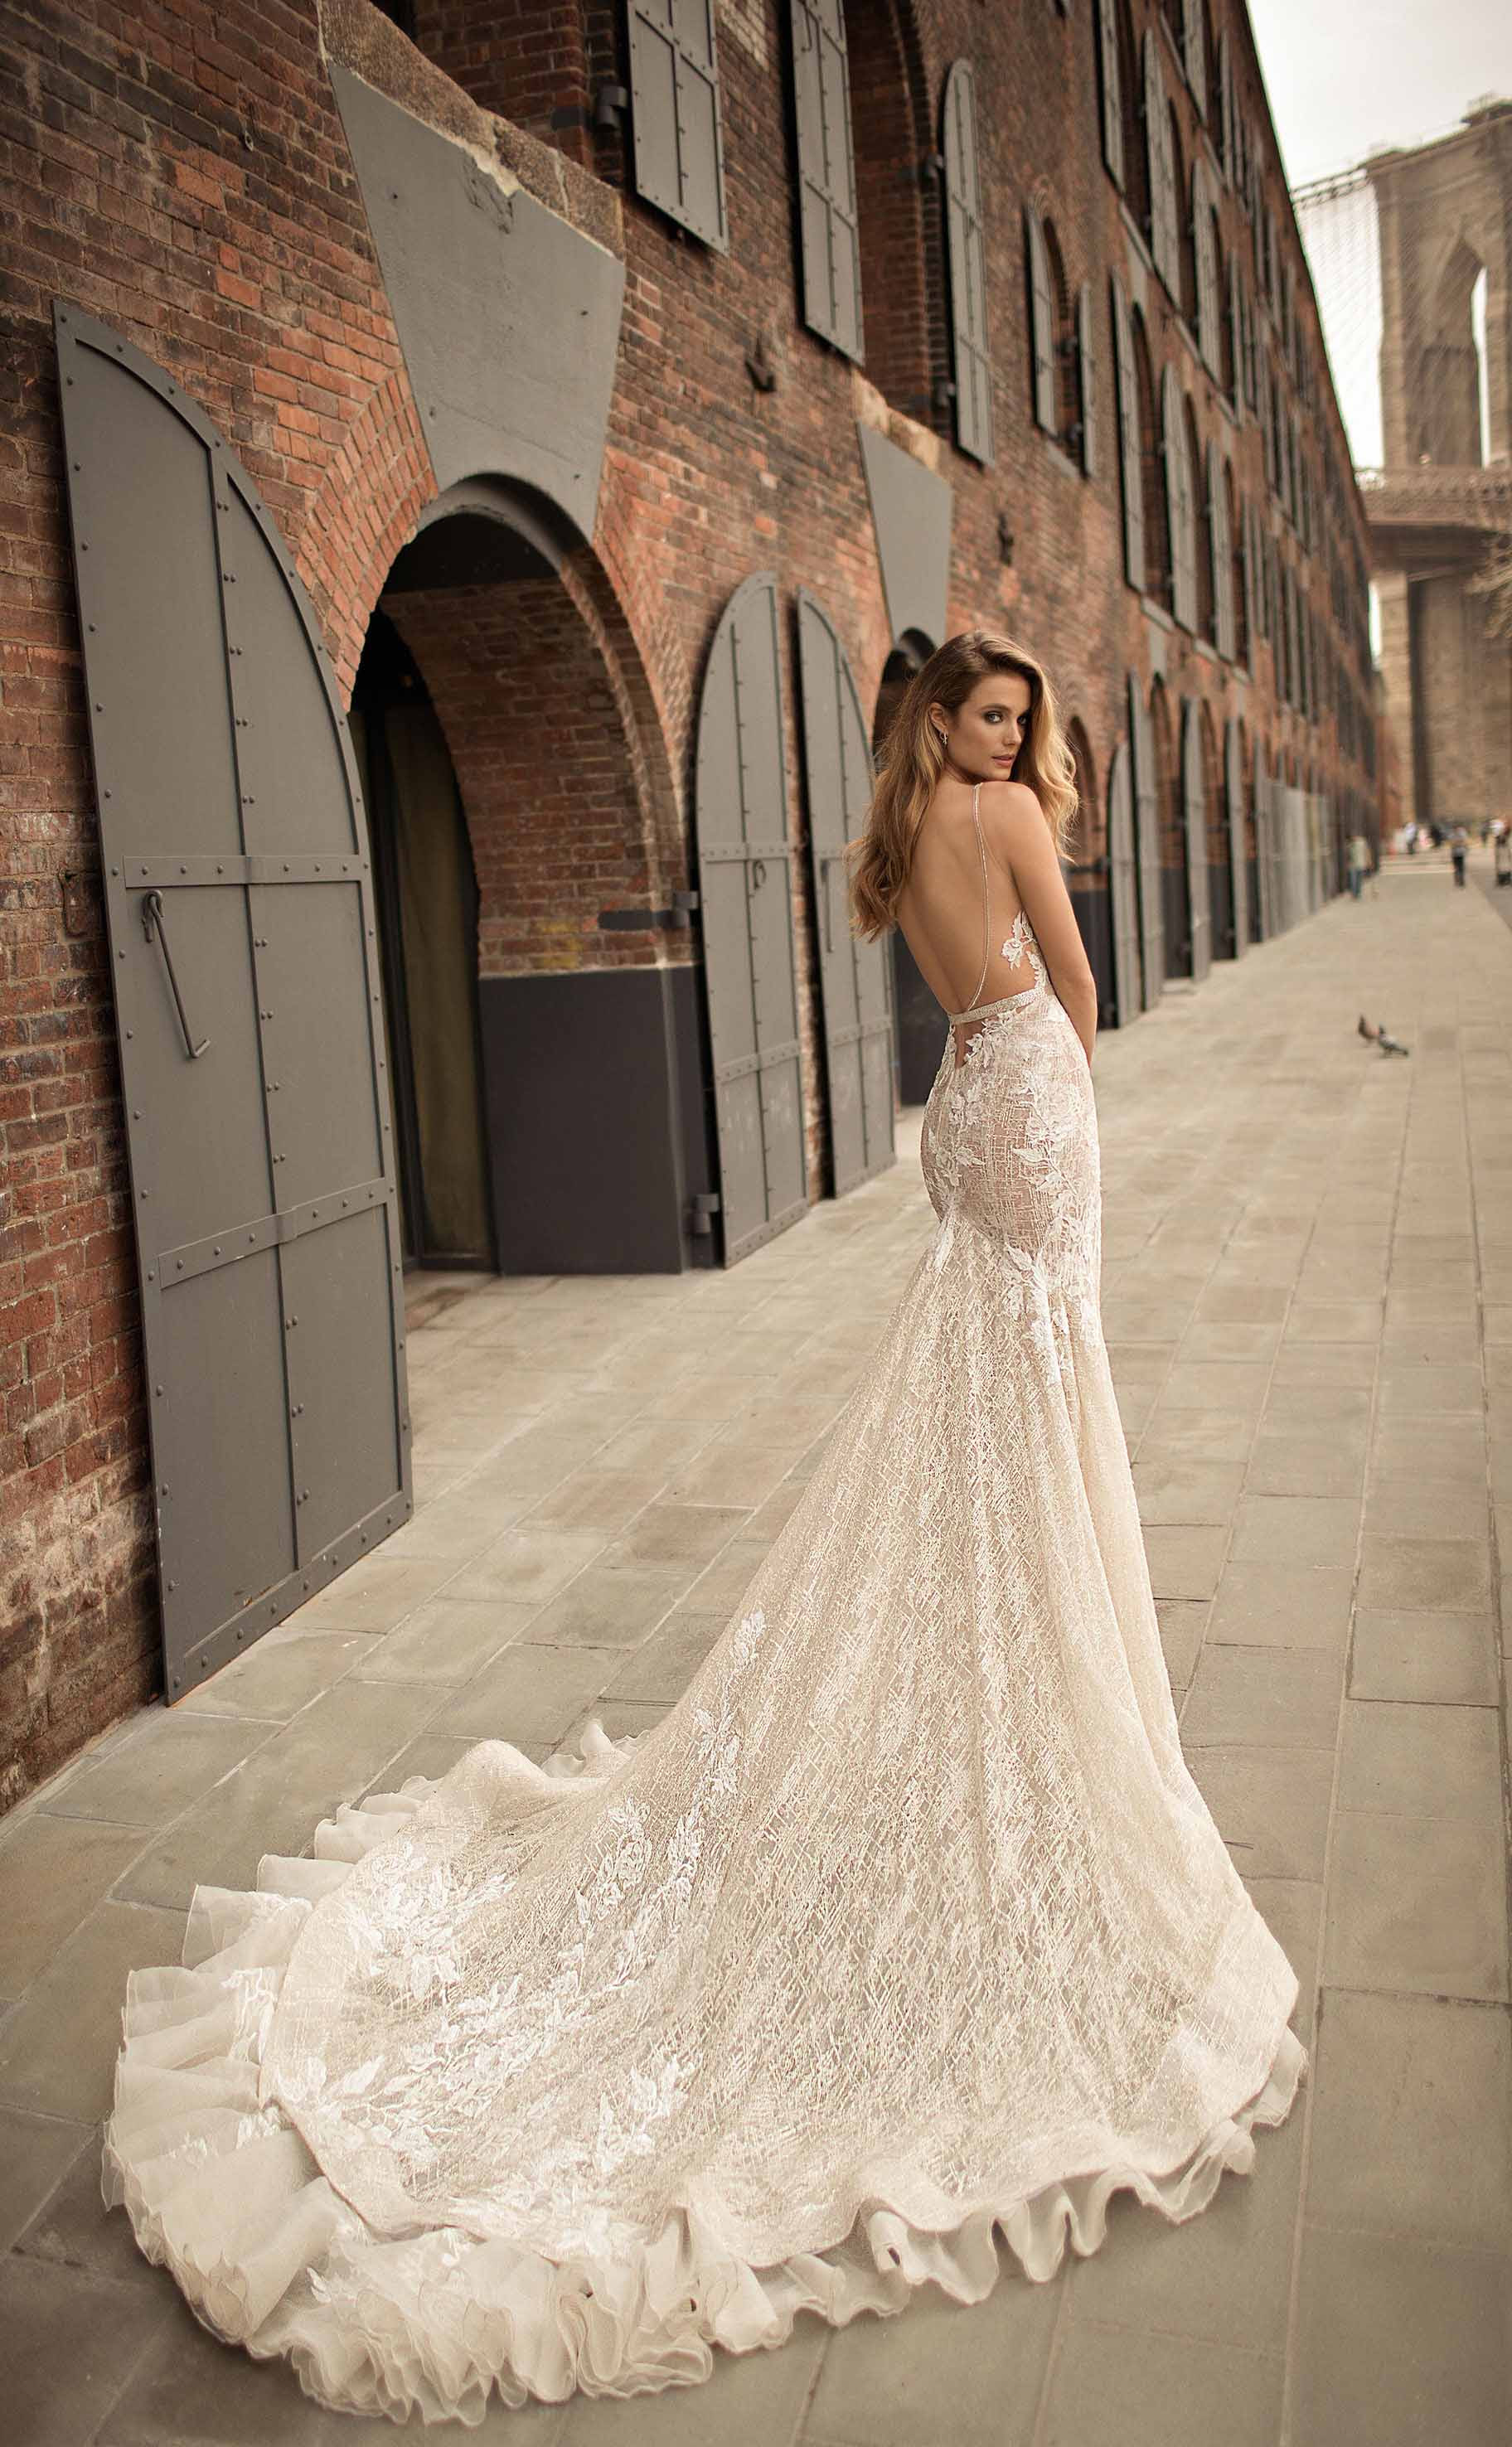 K'Mich Weddings - wedding dresses  - Berta Bridal Collection